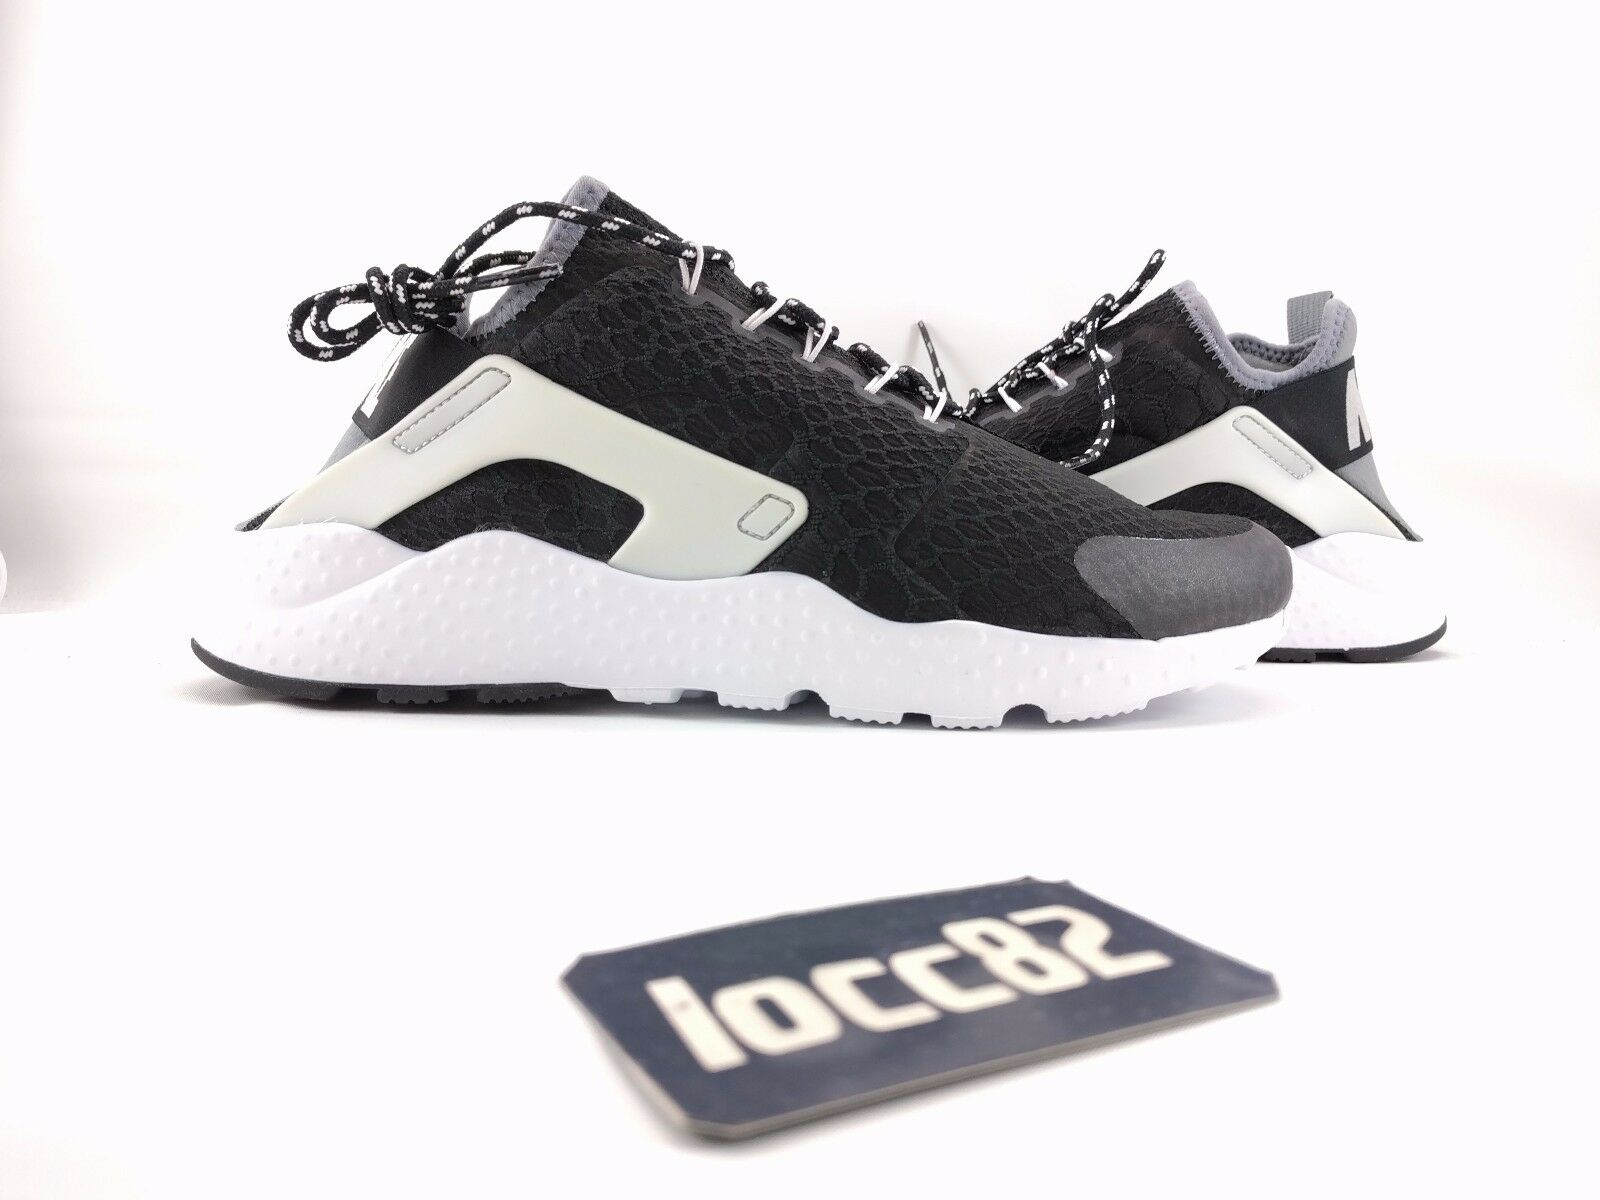 Nike Women Air Huarache Run Ultra 002] SI Premium 10.5 [859516 002] Ultra black grey 2bdc11